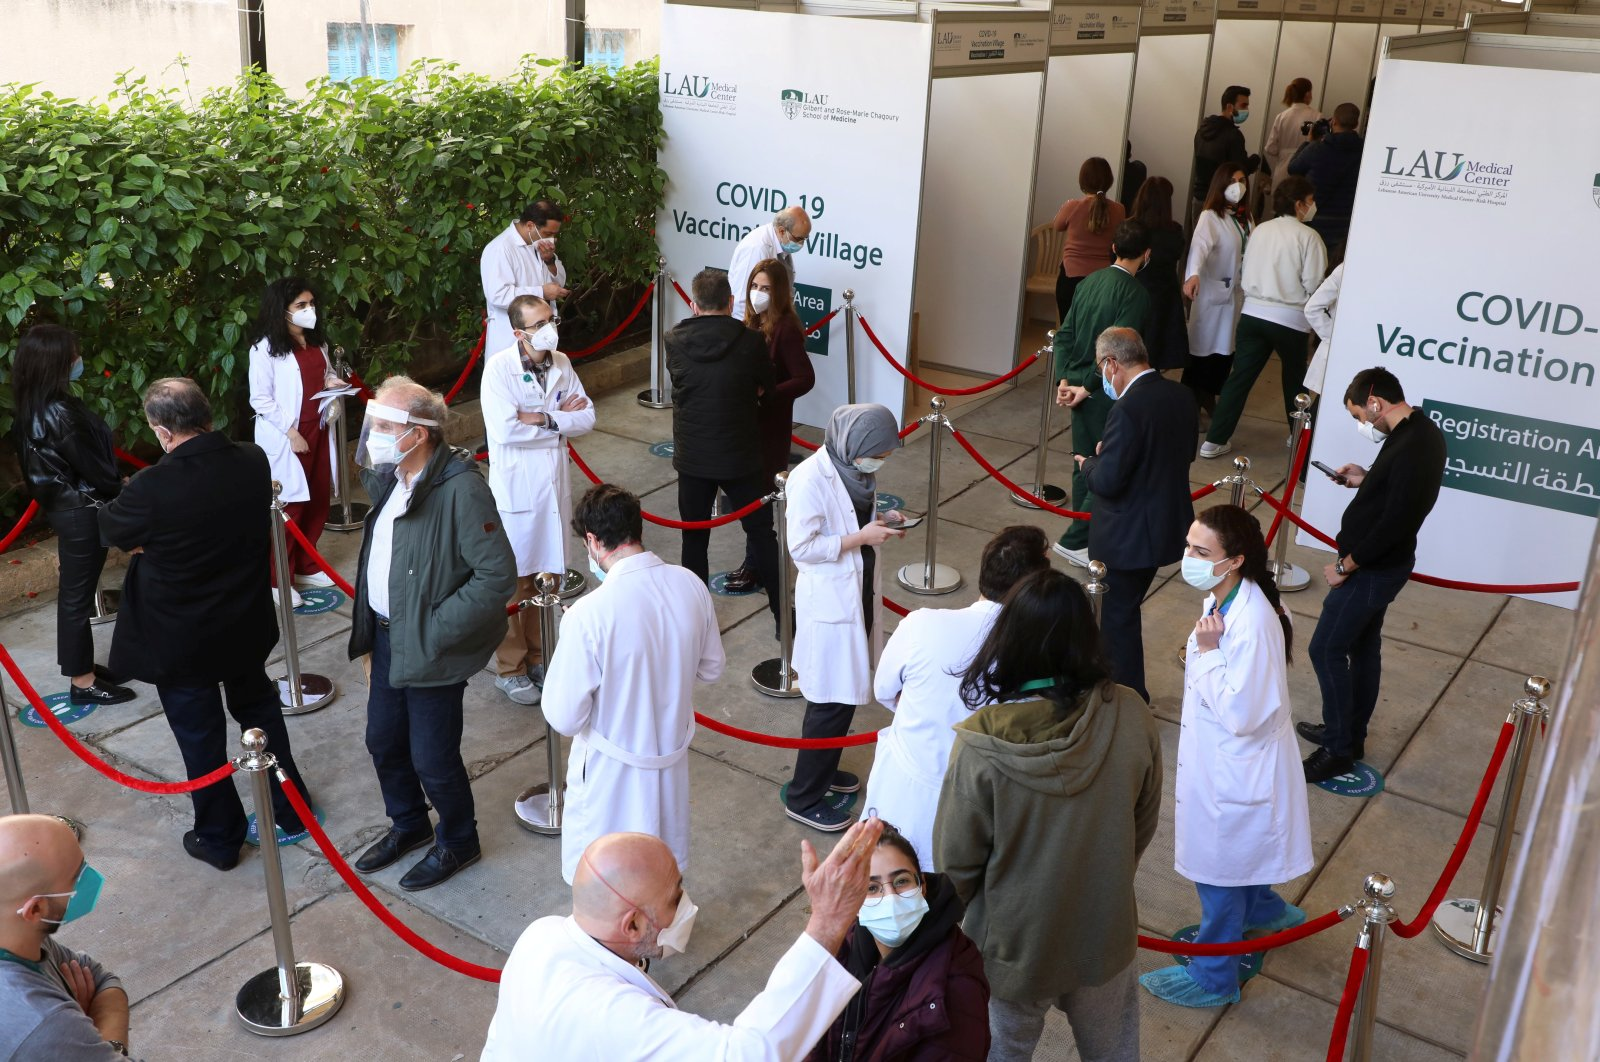 Health care workers wait to receive the Pfizer/BioNTech COVID-19 vaccine during a coronavirus vaccination campaign at Lebanese American University Medical Center-Rizk Hospital in Beirut, Lebanon, Feb. 16, 2021. (Reuters Photo)